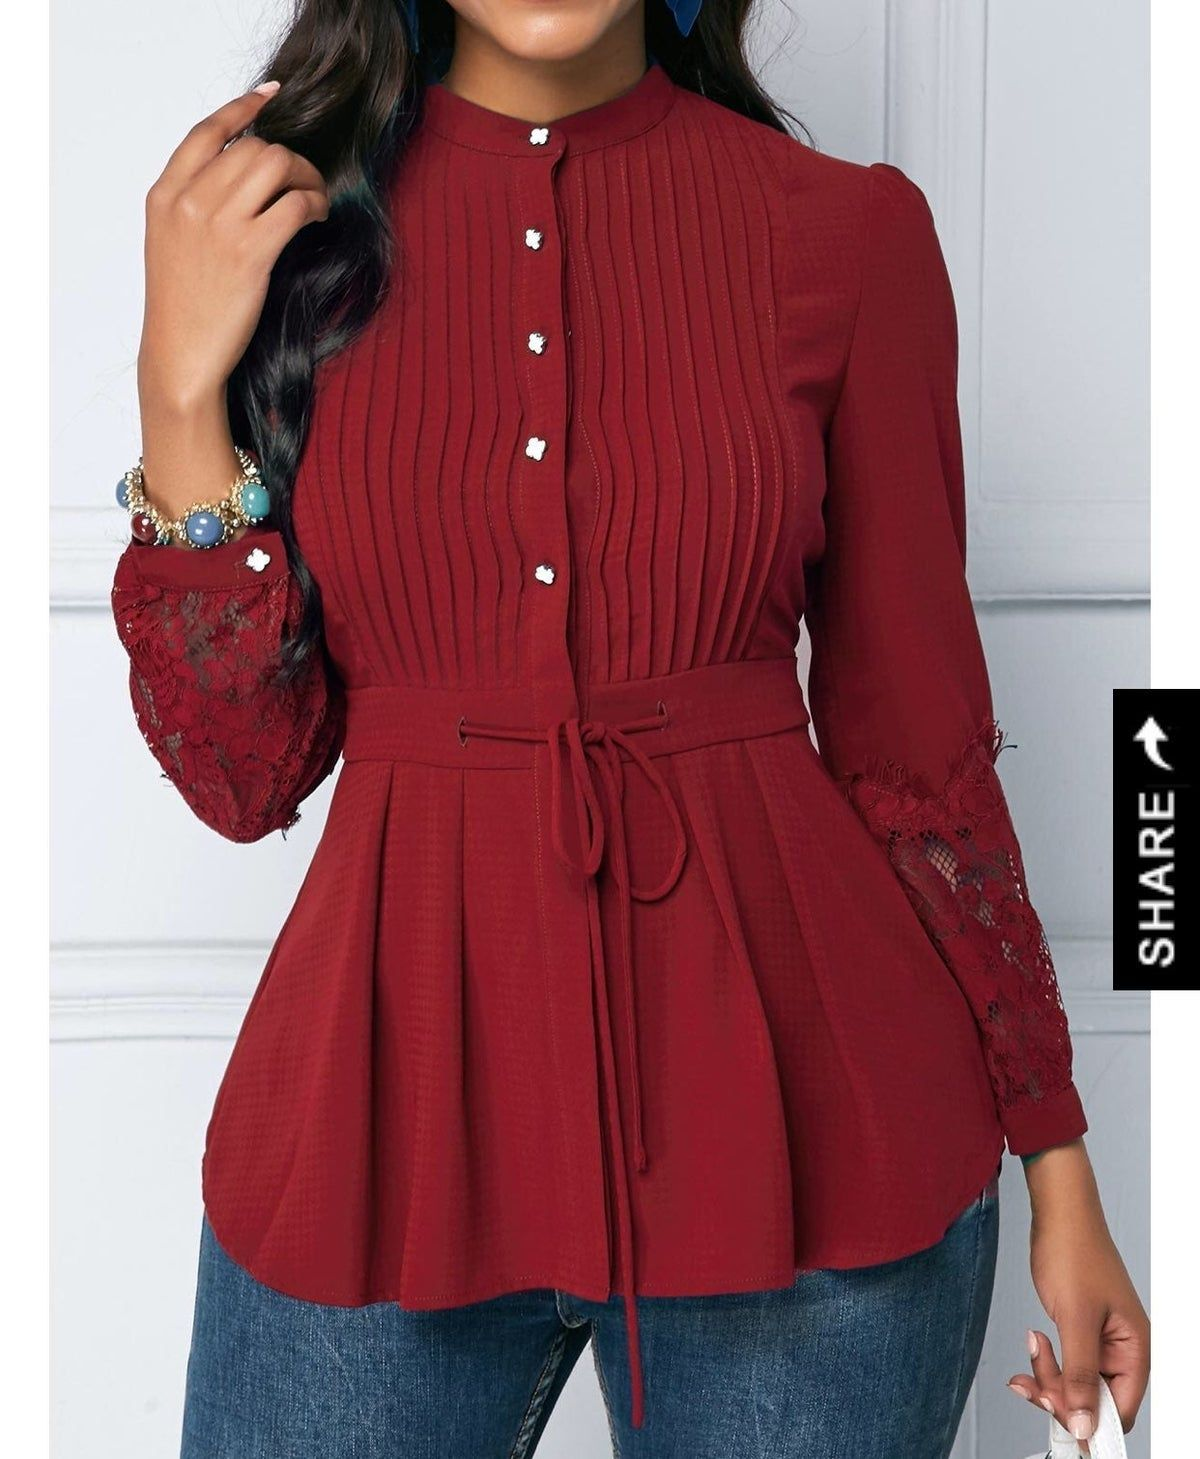 Burgundy Blouse Fashion Blouse Designs Peplum Blouse